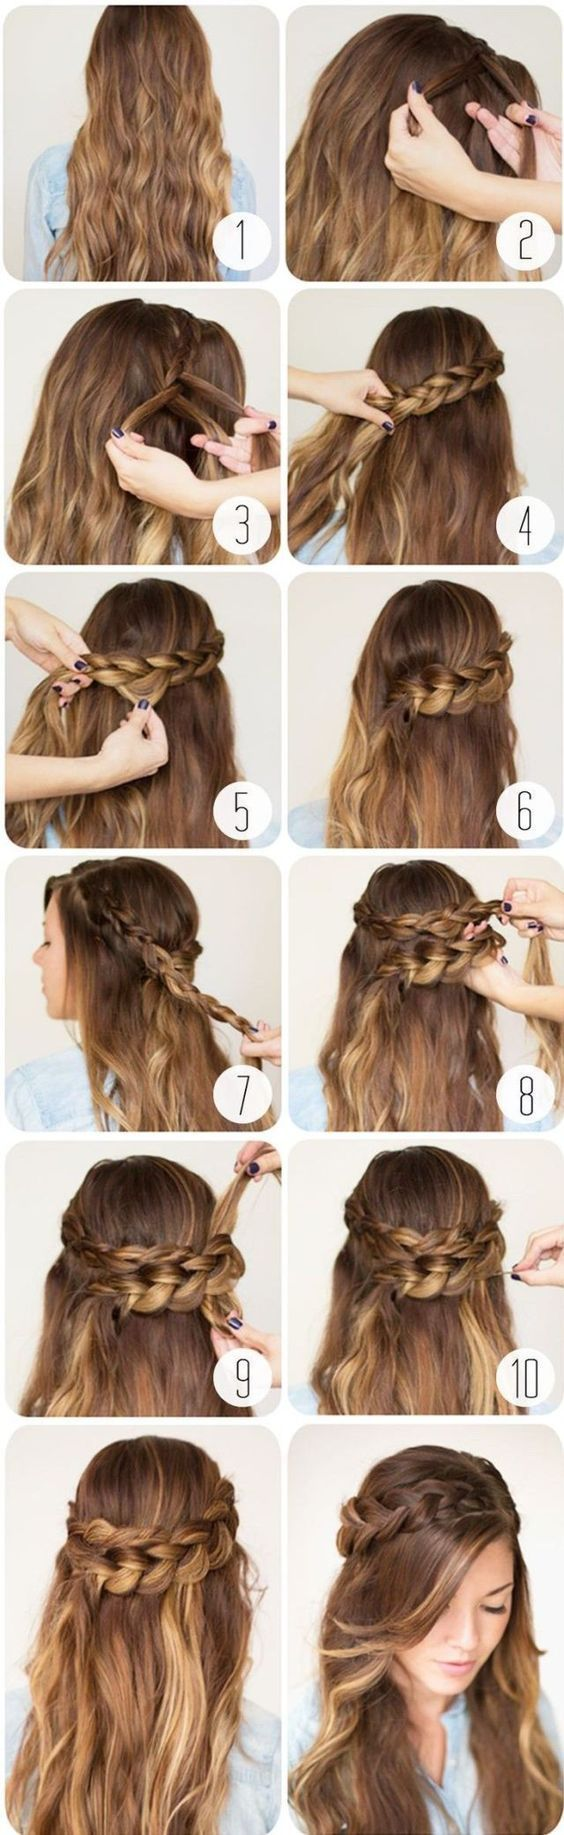 Hairstyle // Step-by-step braided hairstyle.